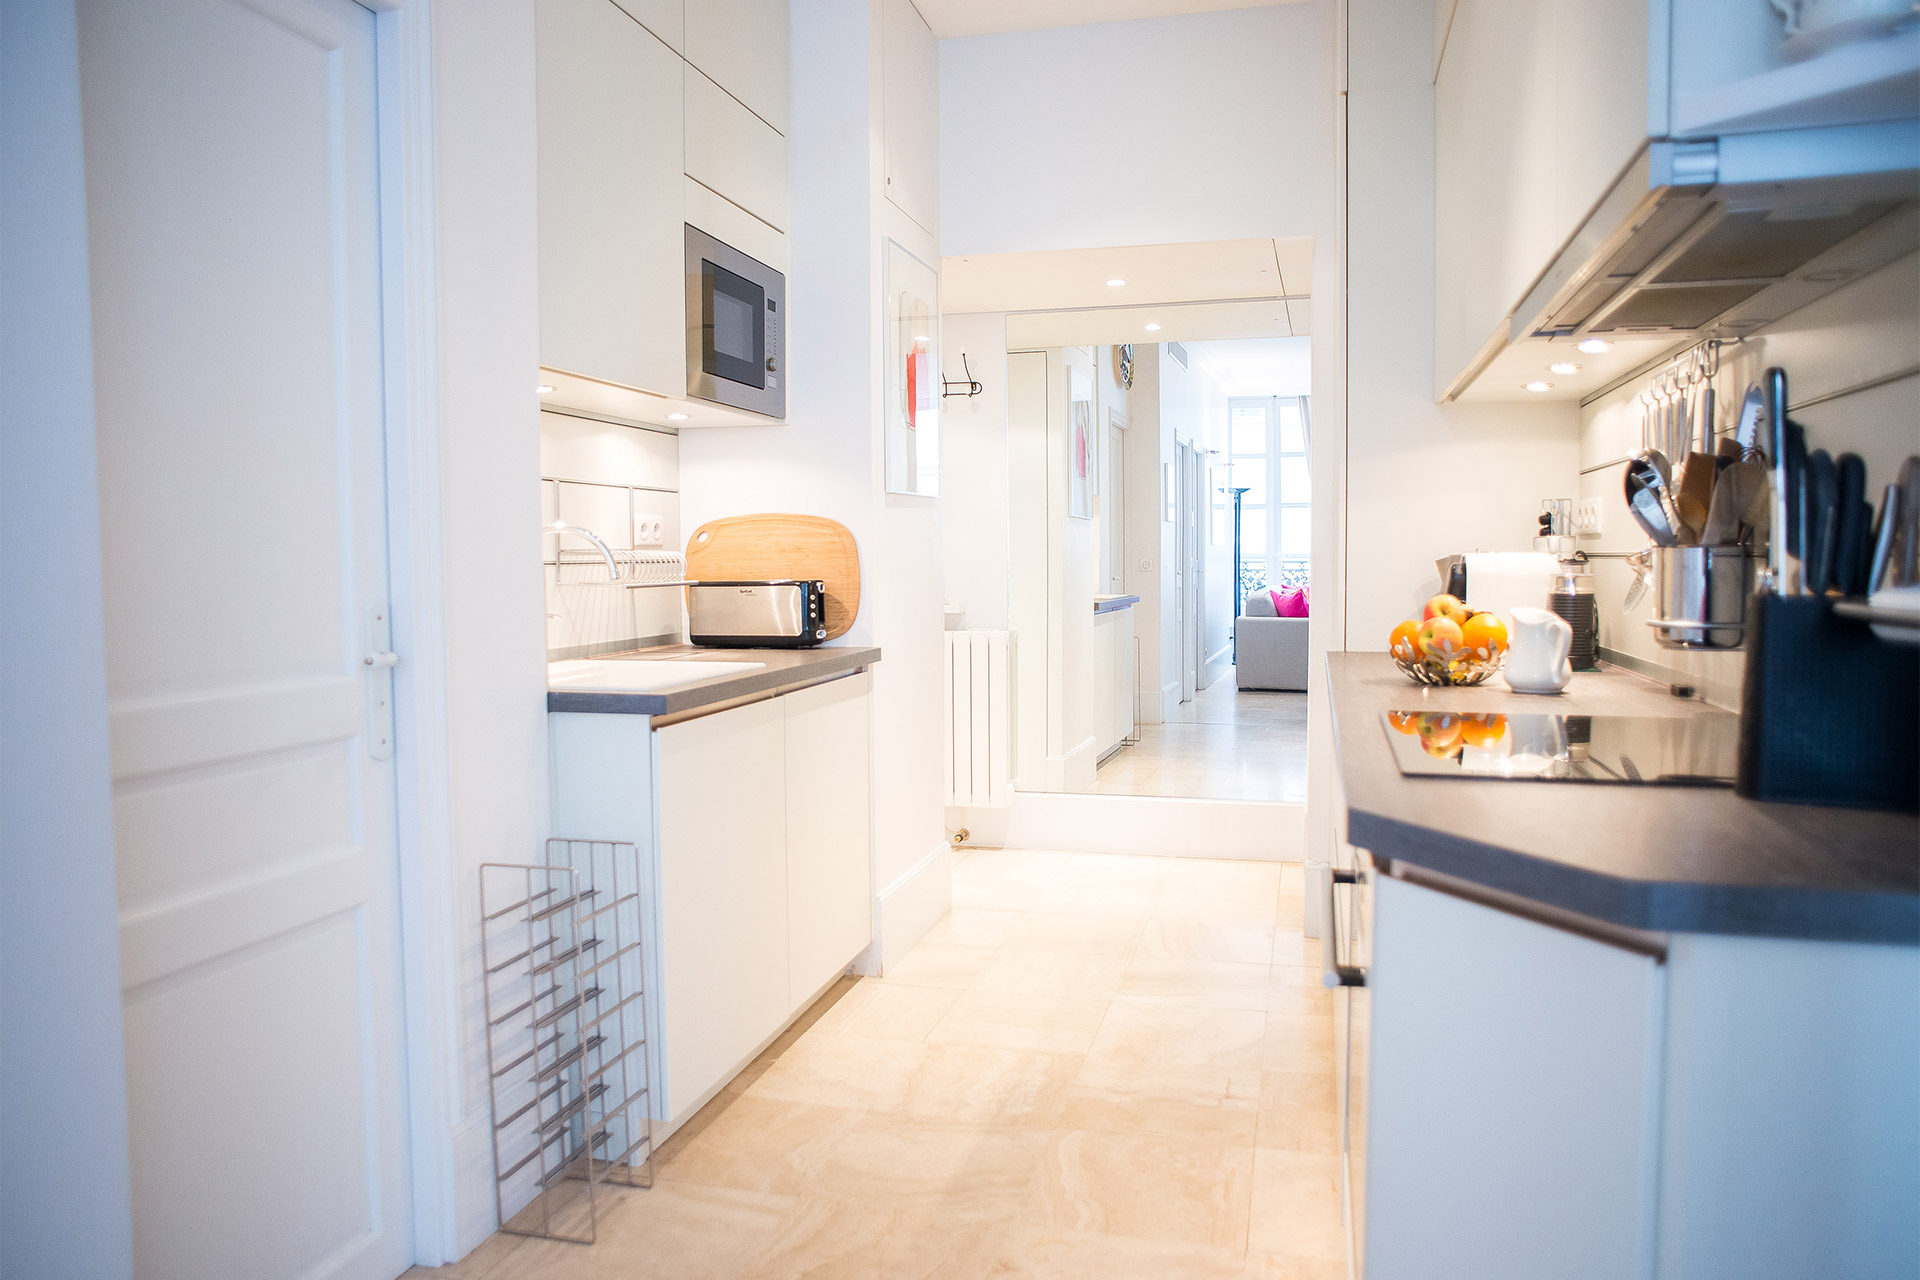 Walk through kitchen in the Bel-Air vacation rental offered by Paris Perfect